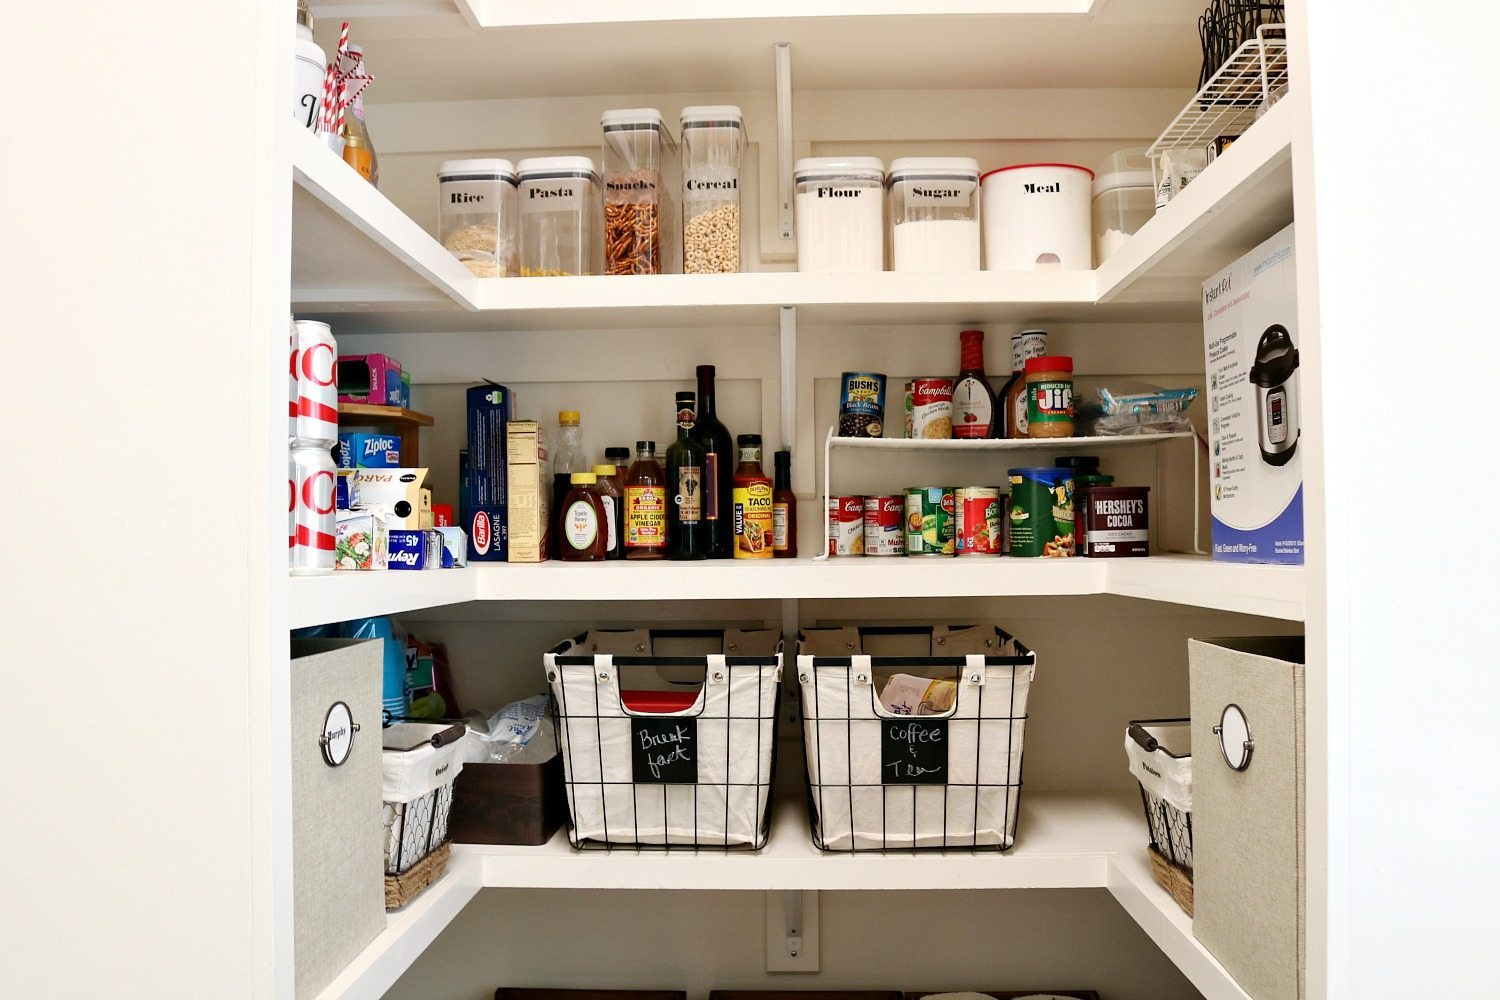 Chalkboard labels make it easy to keep the pantry organized